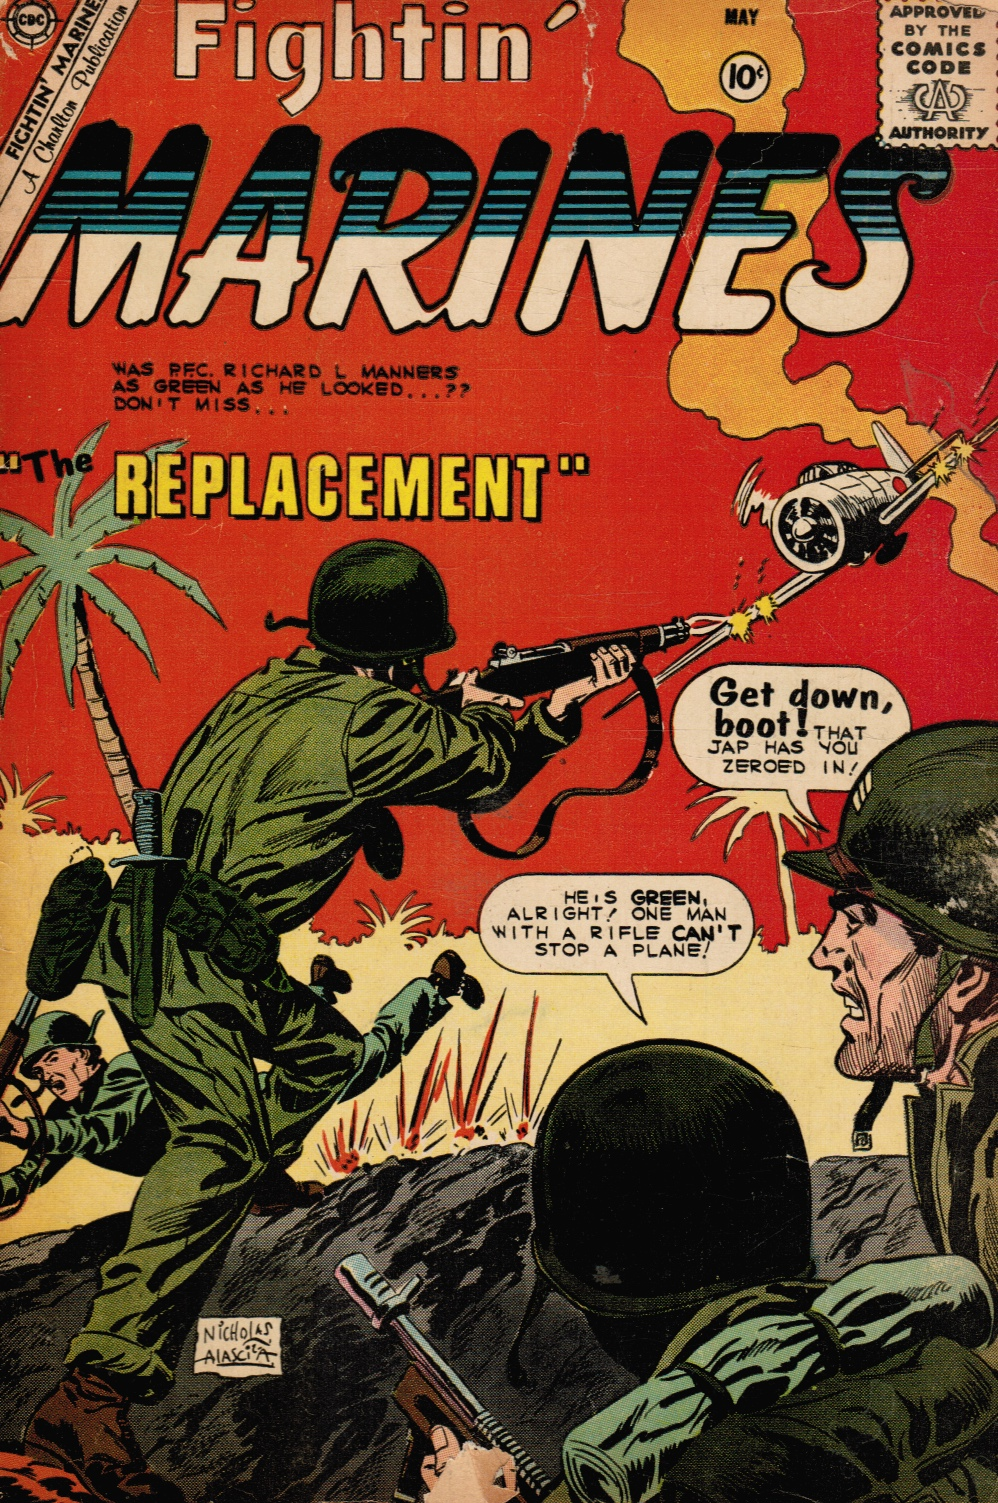 Image for Fightin' Marines: Volume 1, Number 35